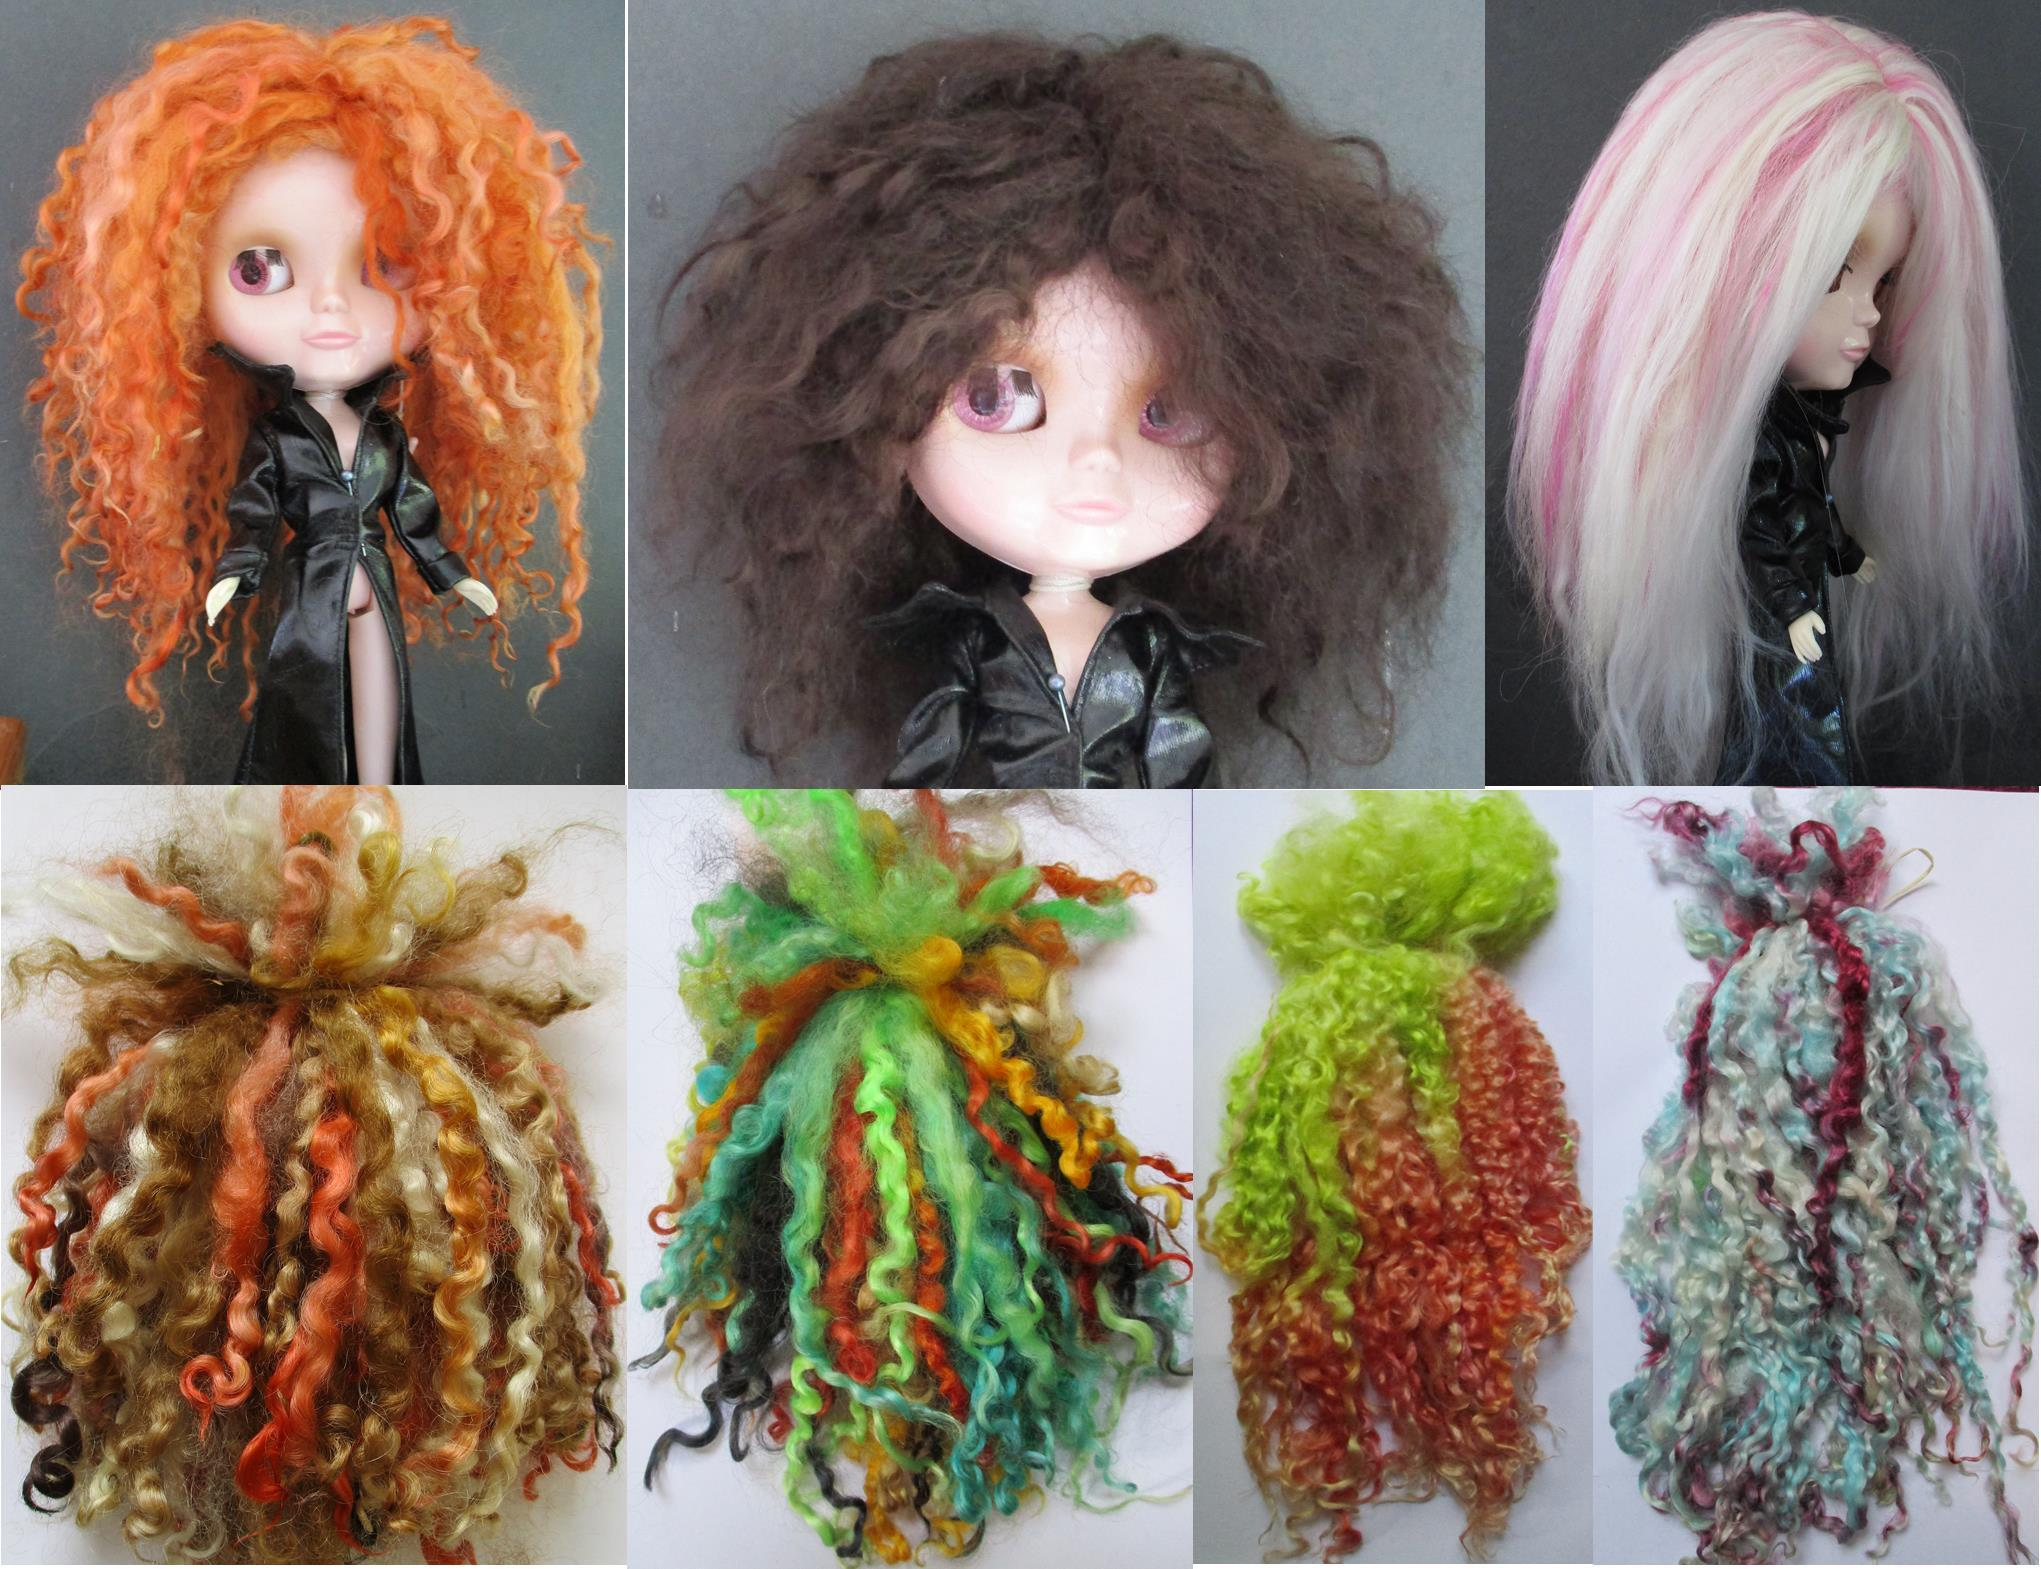 ethical_doll_wigs_and_teeswater_for_doll_hair